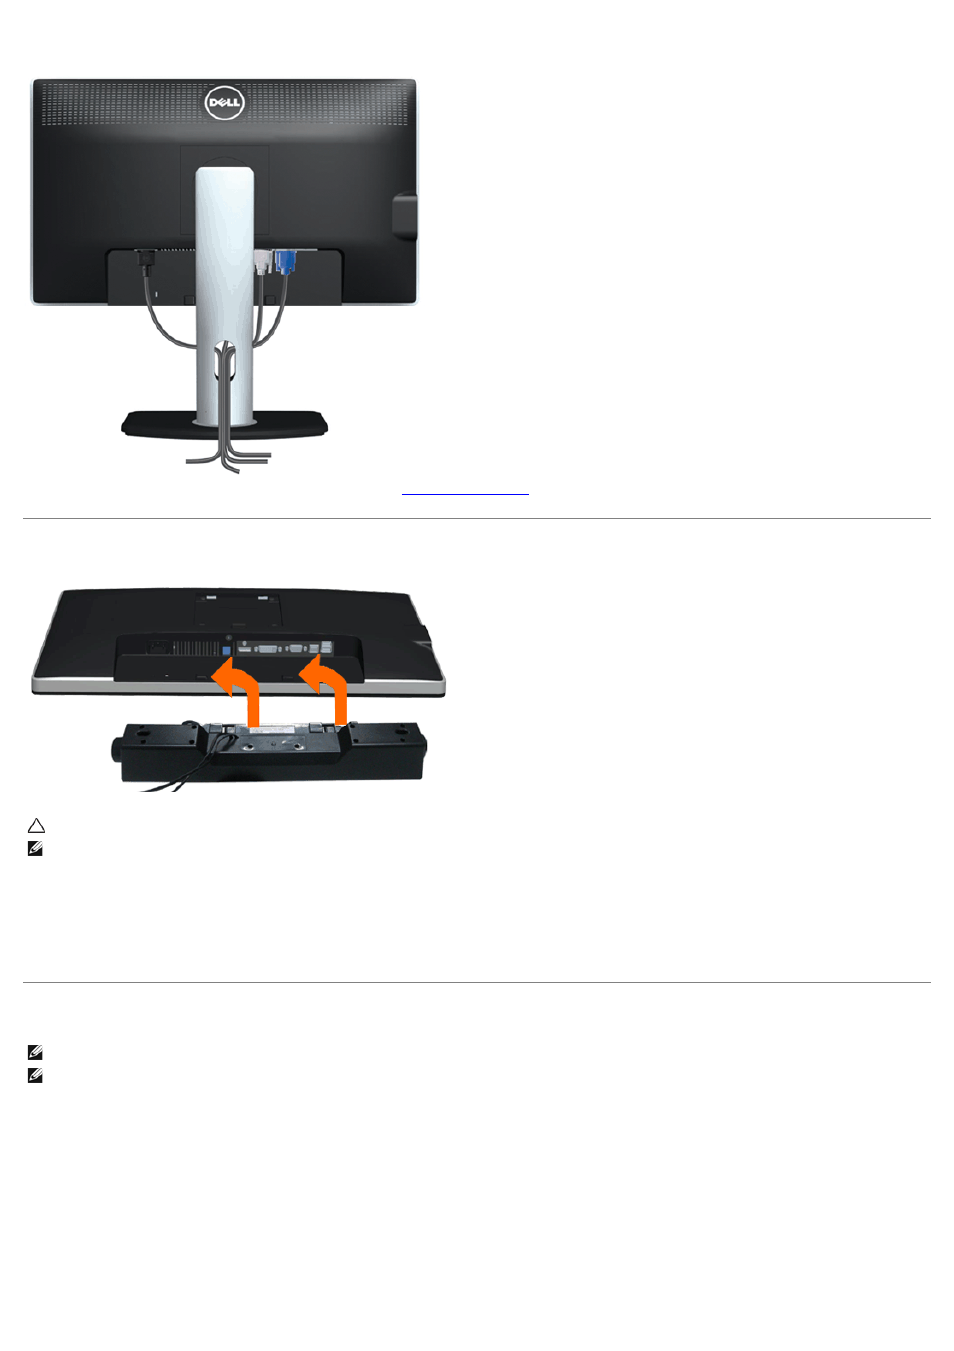 Dell u2312hm monitor quick start manual free pdf download (1 pages).